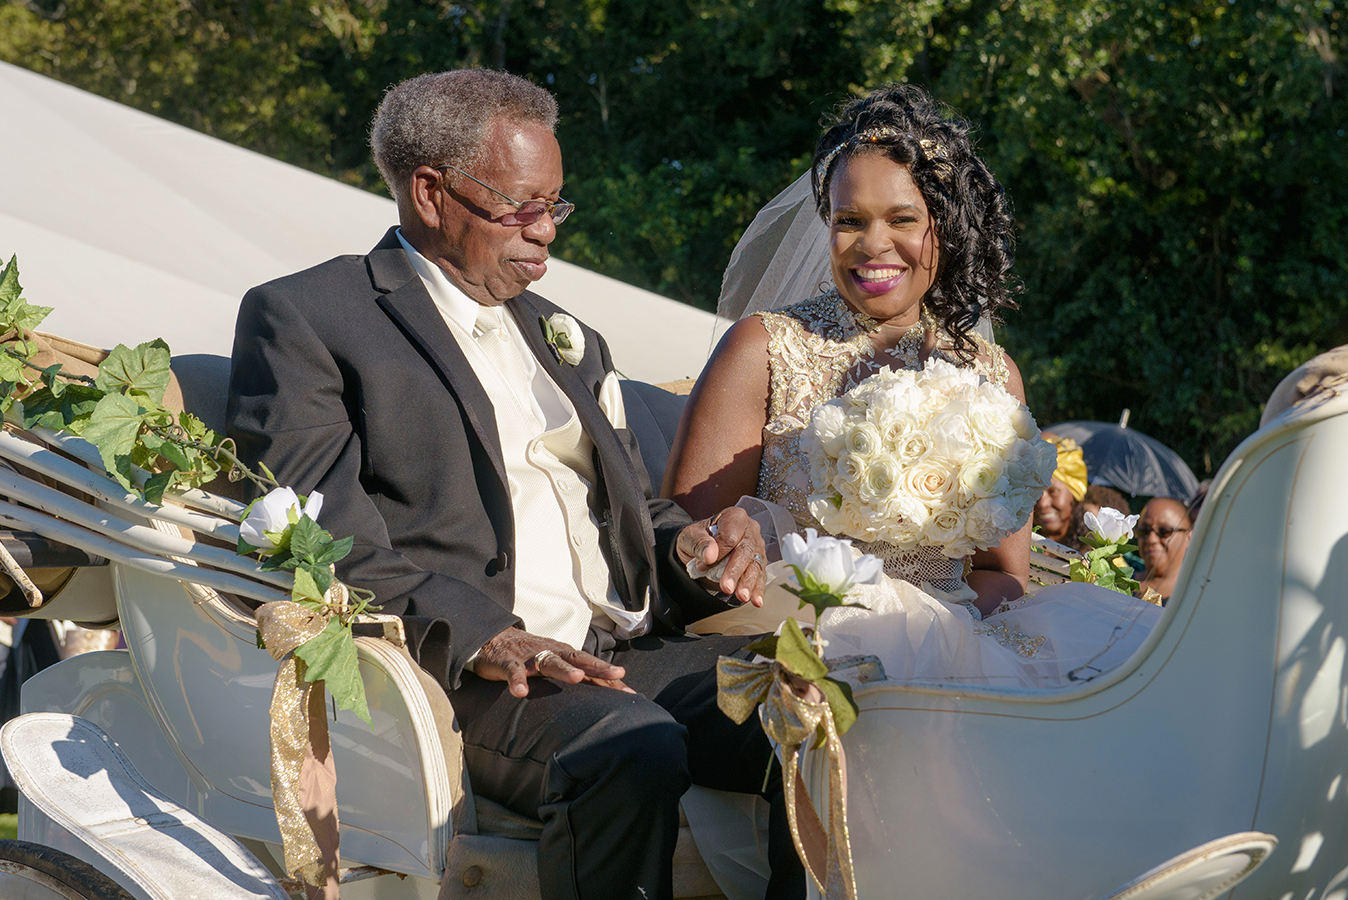 """The favorite part of my wedding day was the horse and carriage ride,"" shares Doliecha."